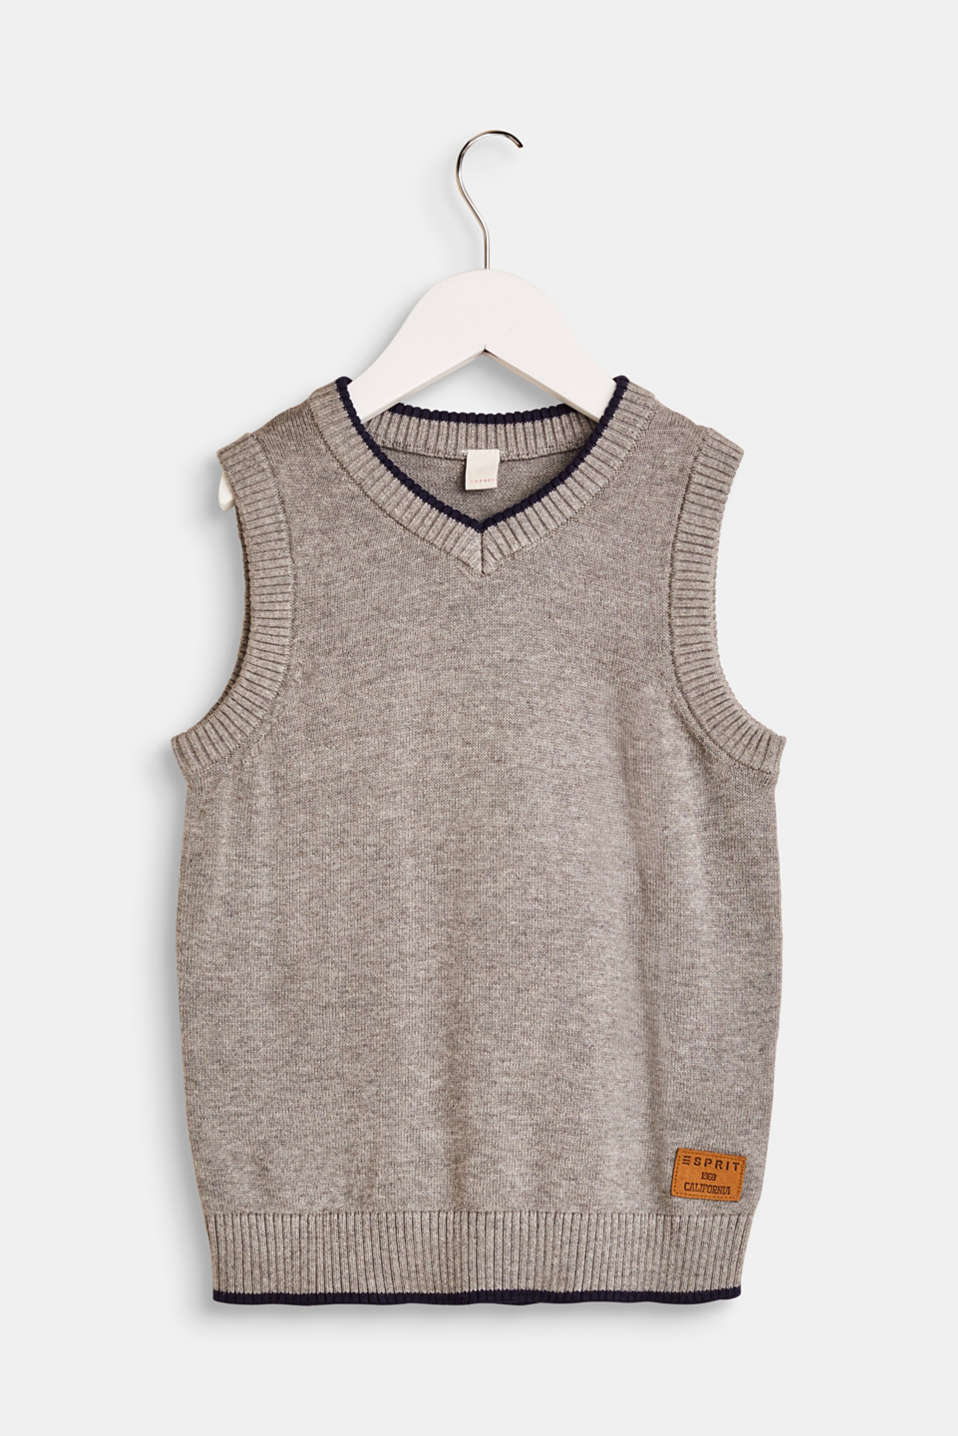 Esprit - Knitted sweater vest in 100% cotton